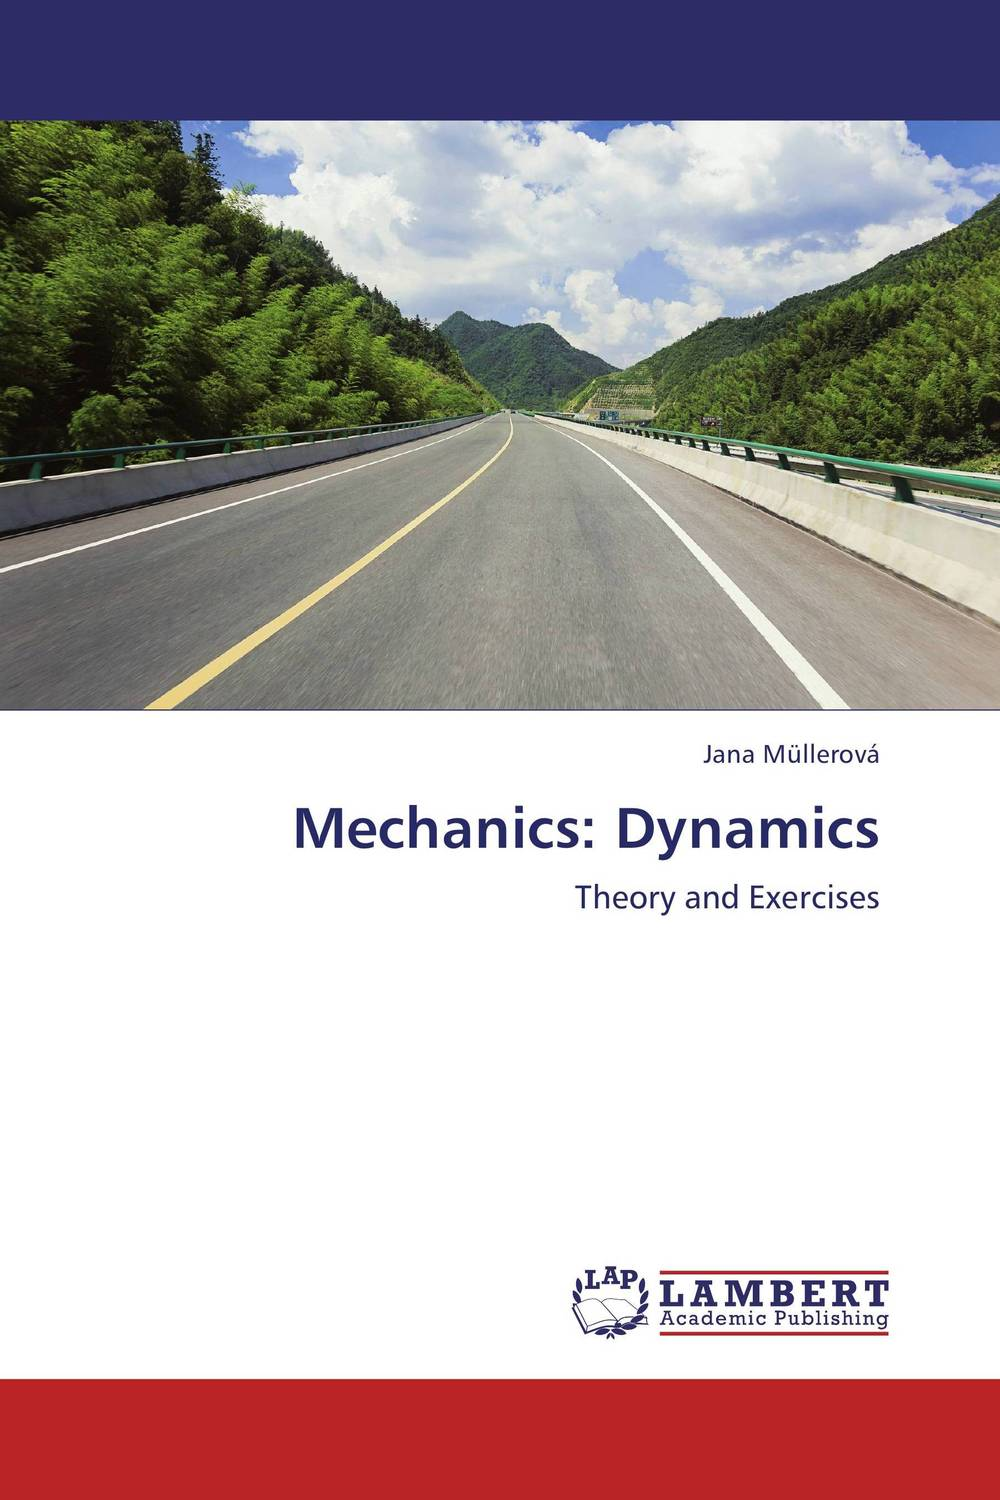 Mechanics: Dynamics